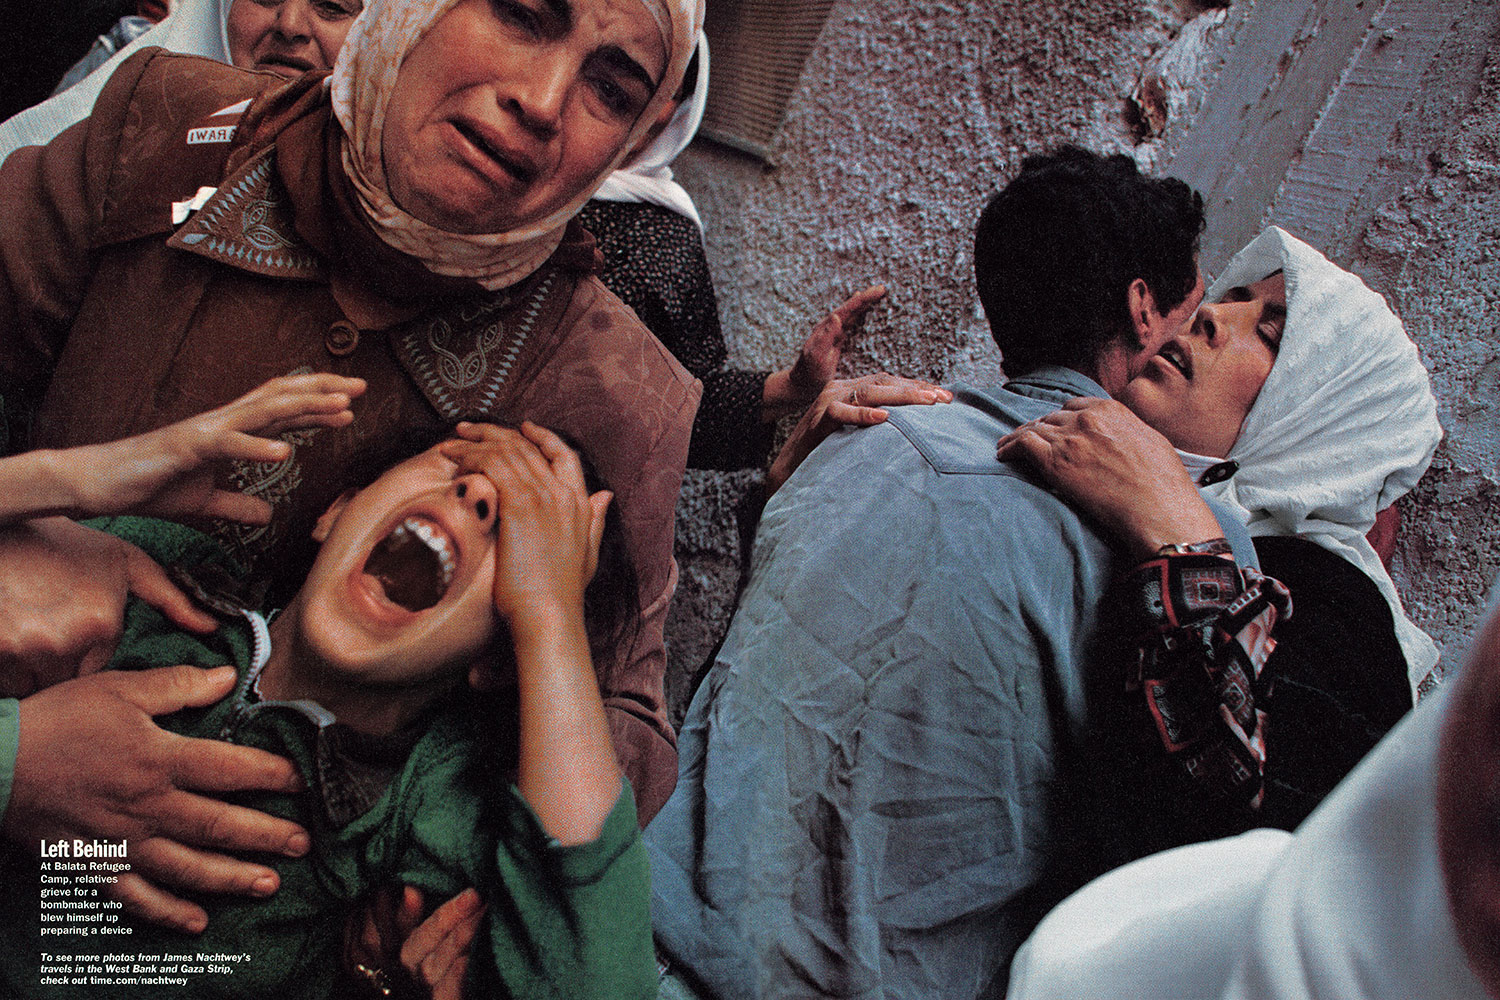 From  The Palestinians: An Inside Look at Life in an Embattled Society.  August 19, 2002 issue.